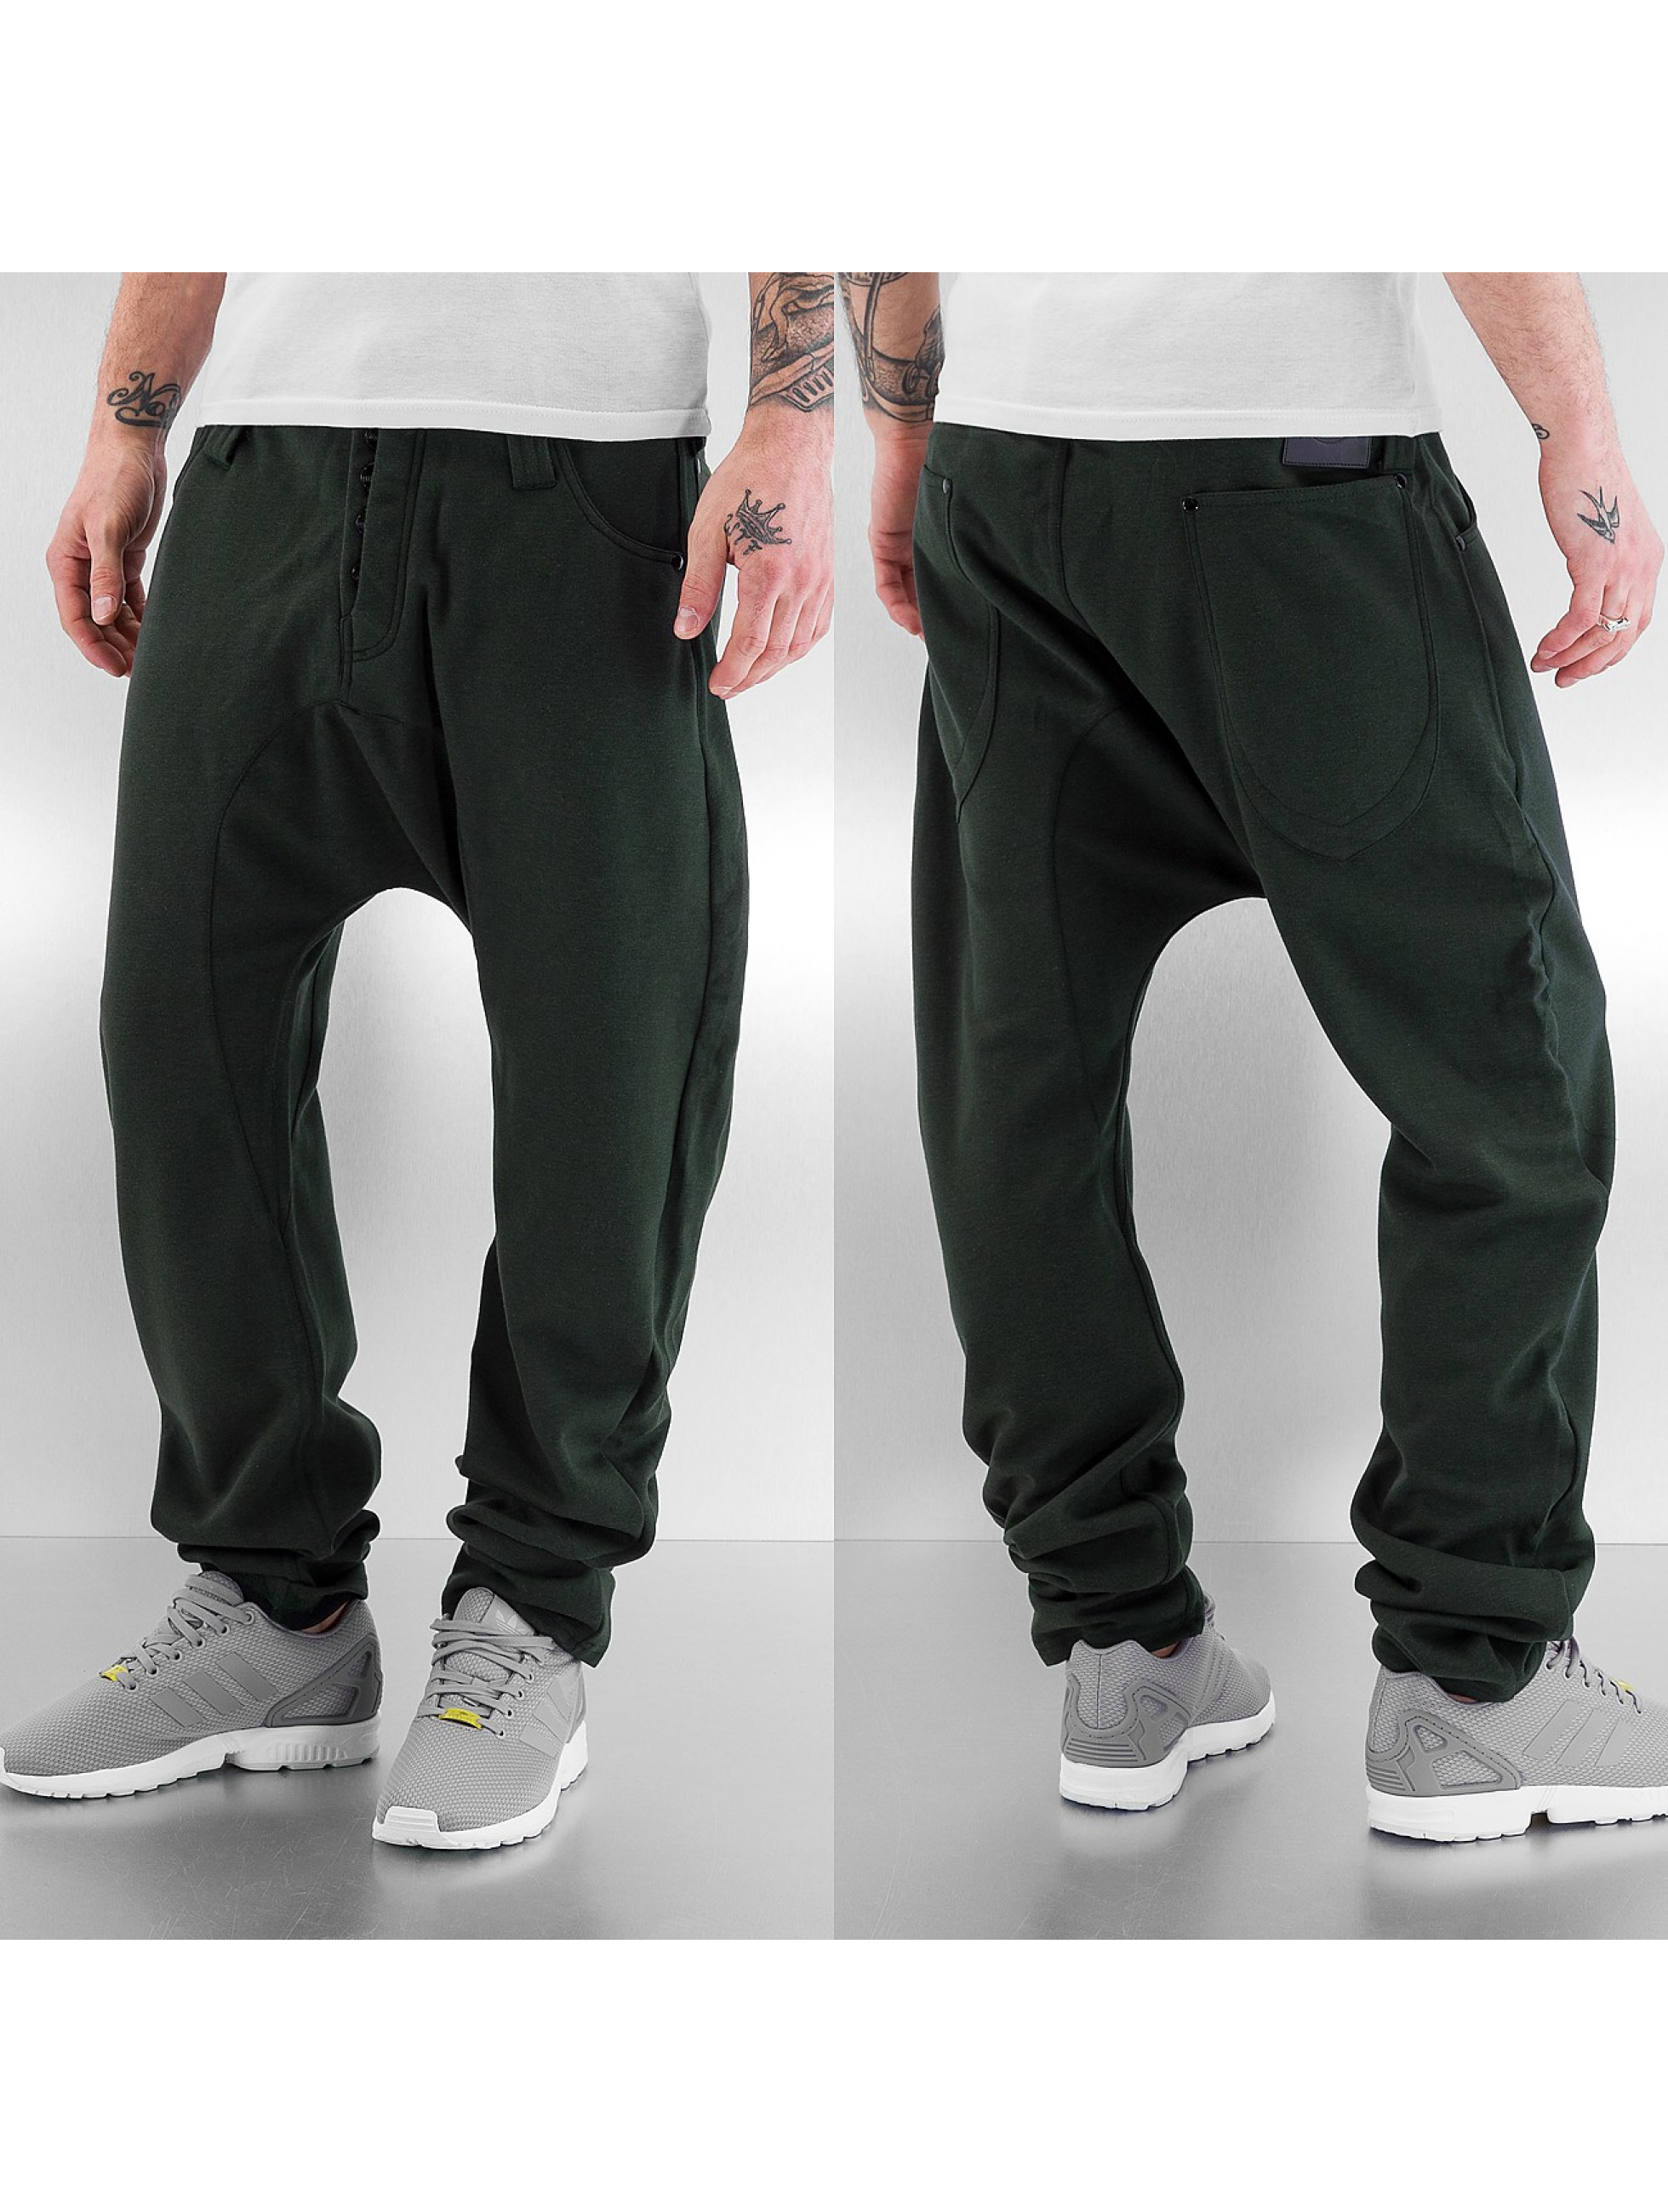 Humör Santiago Anti Fit Pants Dark Spruce